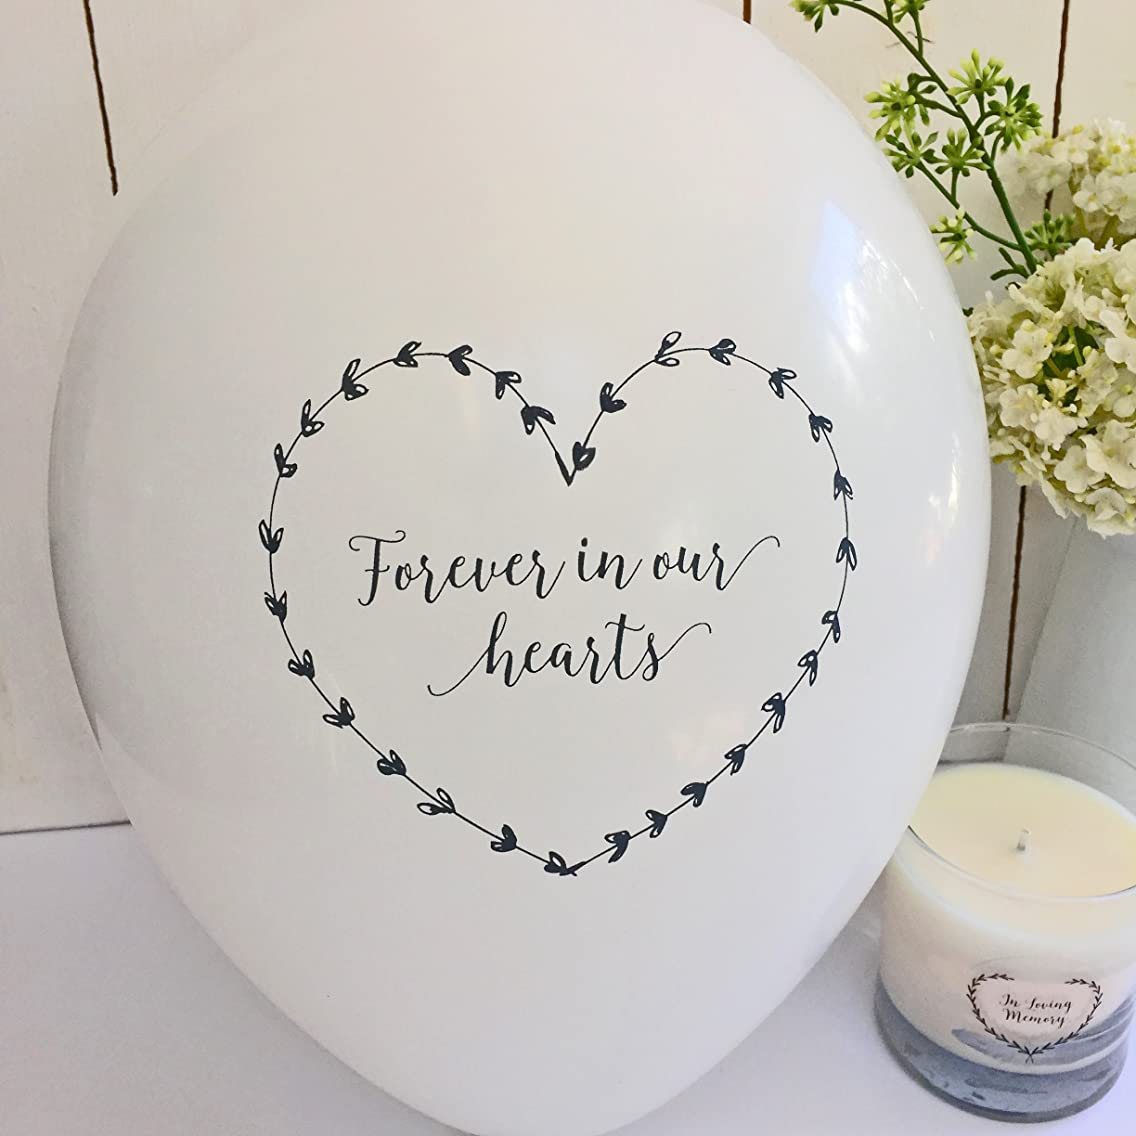 ANGEL & DOVE 25 White 'Forever In Our Hearts' Biodegradable Funeral Remembrance Balloons - for Memory Table, Memorial, Condolence, Celebration of Life